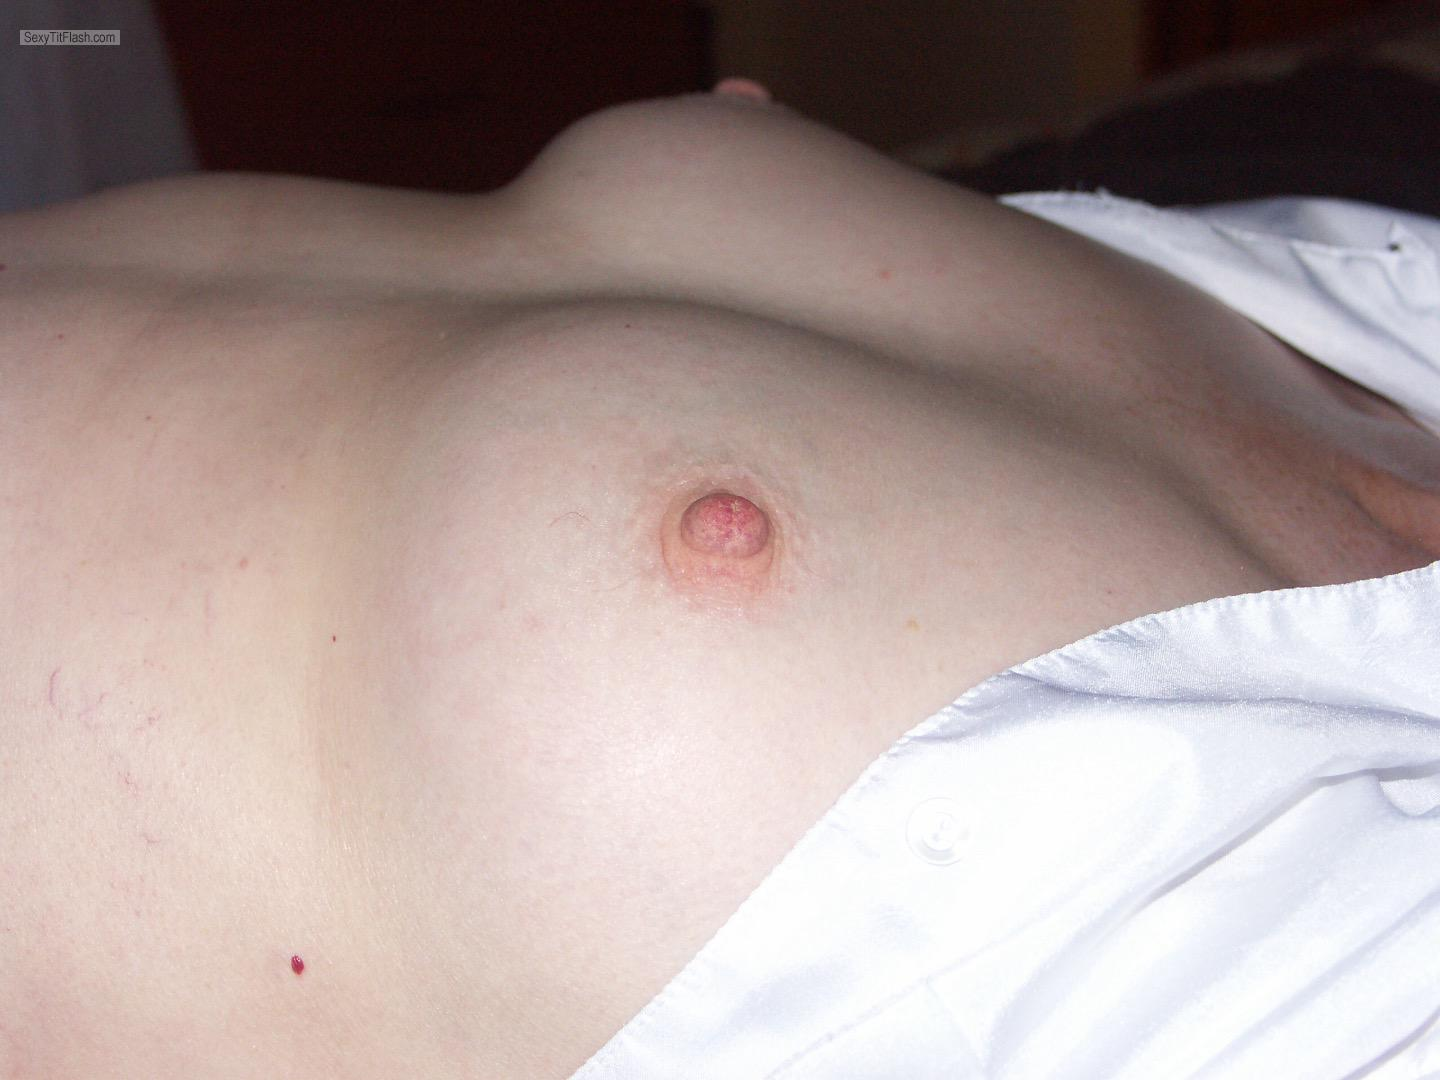 Tit Flash: Wife's Small Tits - Moll from United Kingdom